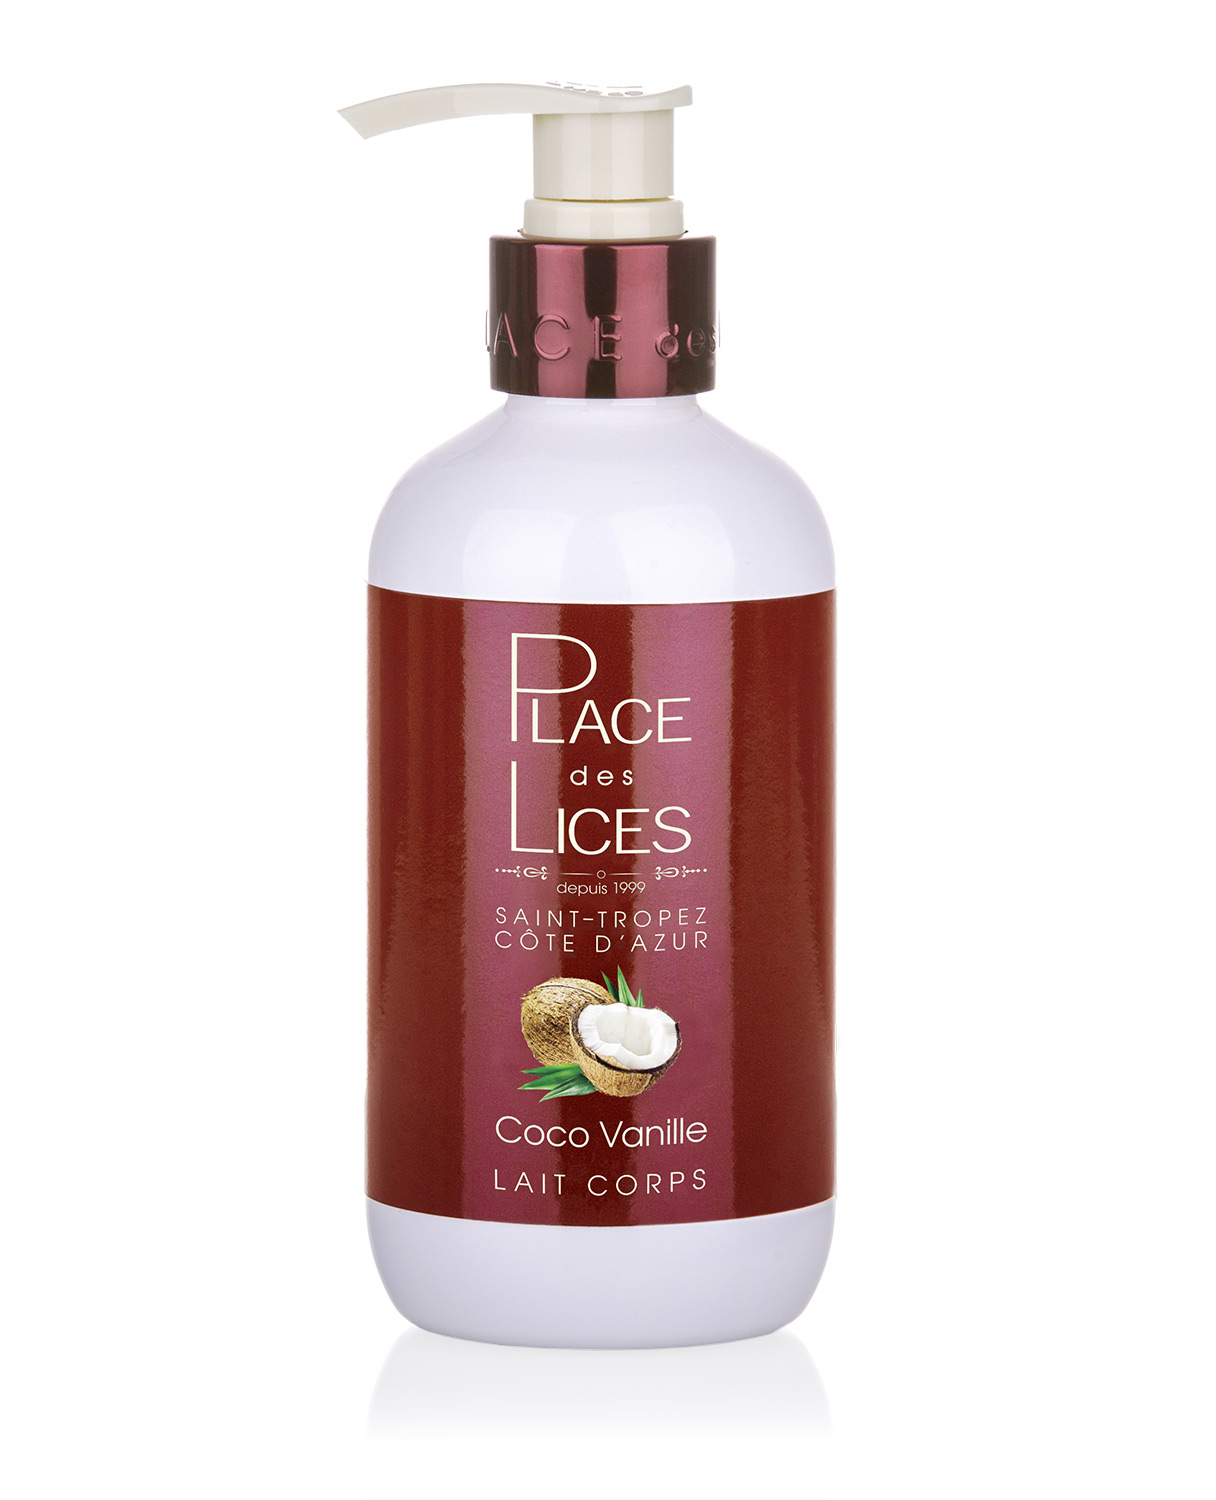 Place des Lices - Tropeziennes Body Lotion Coco Vanille 250ml - Buy online Gida Profumi